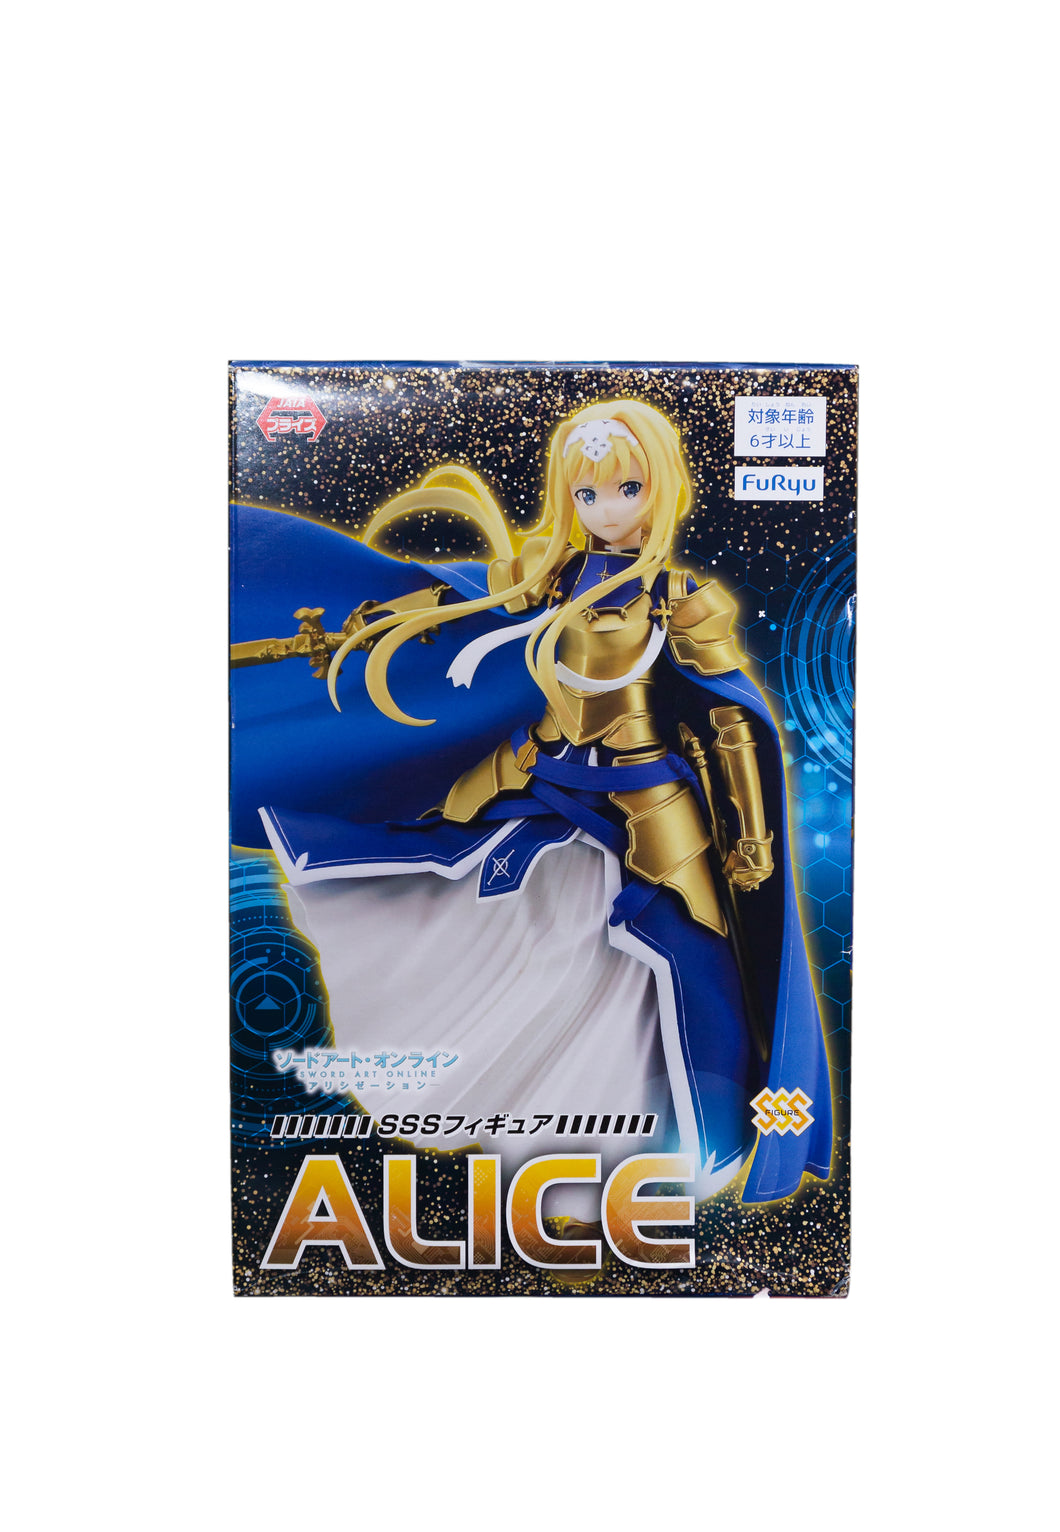 Sword art online Alice armor anime figure